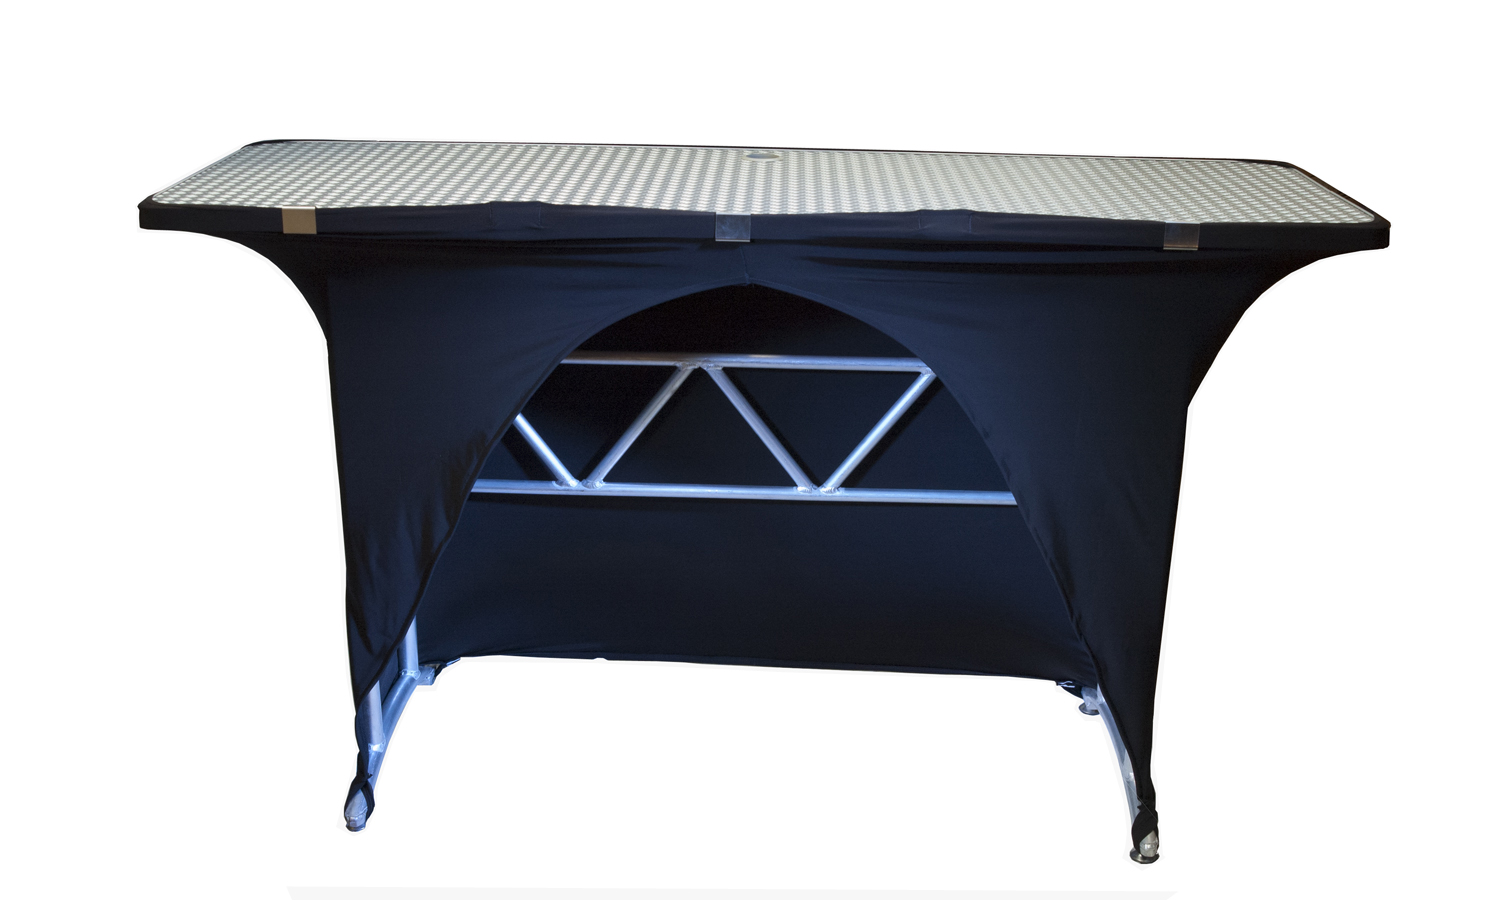 skirt for dj truss table interstate audio. Black Bedroom Furniture Sets. Home Design Ideas